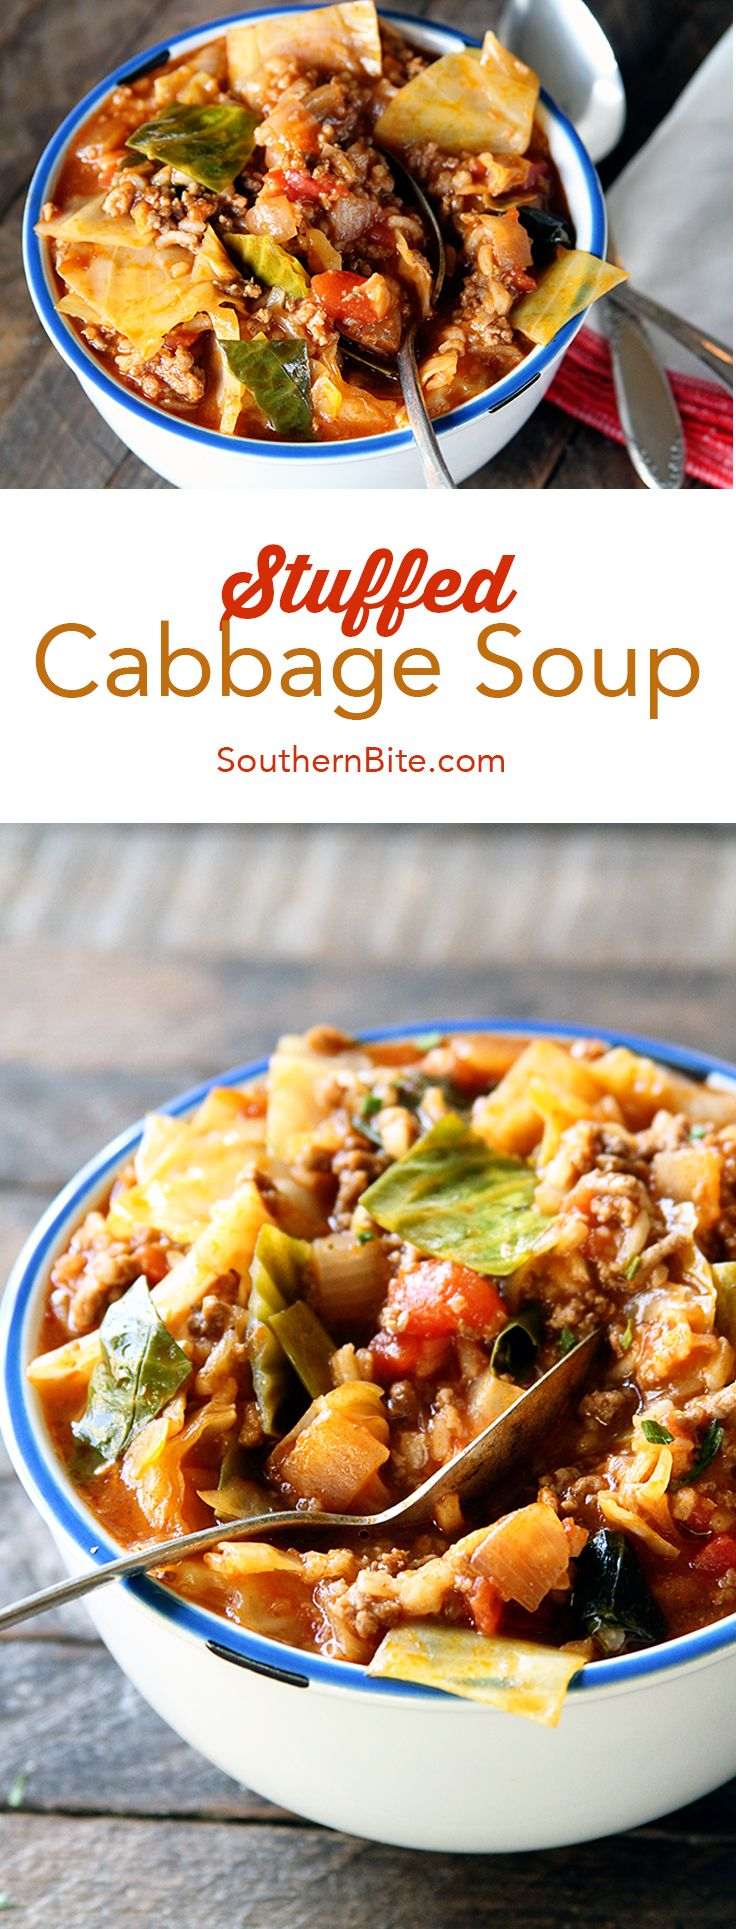 You won't get an easier recipe to create all the delicious flavors of Stuffed Cabbage in a fraction of the time! This Stuffed Cabbage Soup is a real winner!